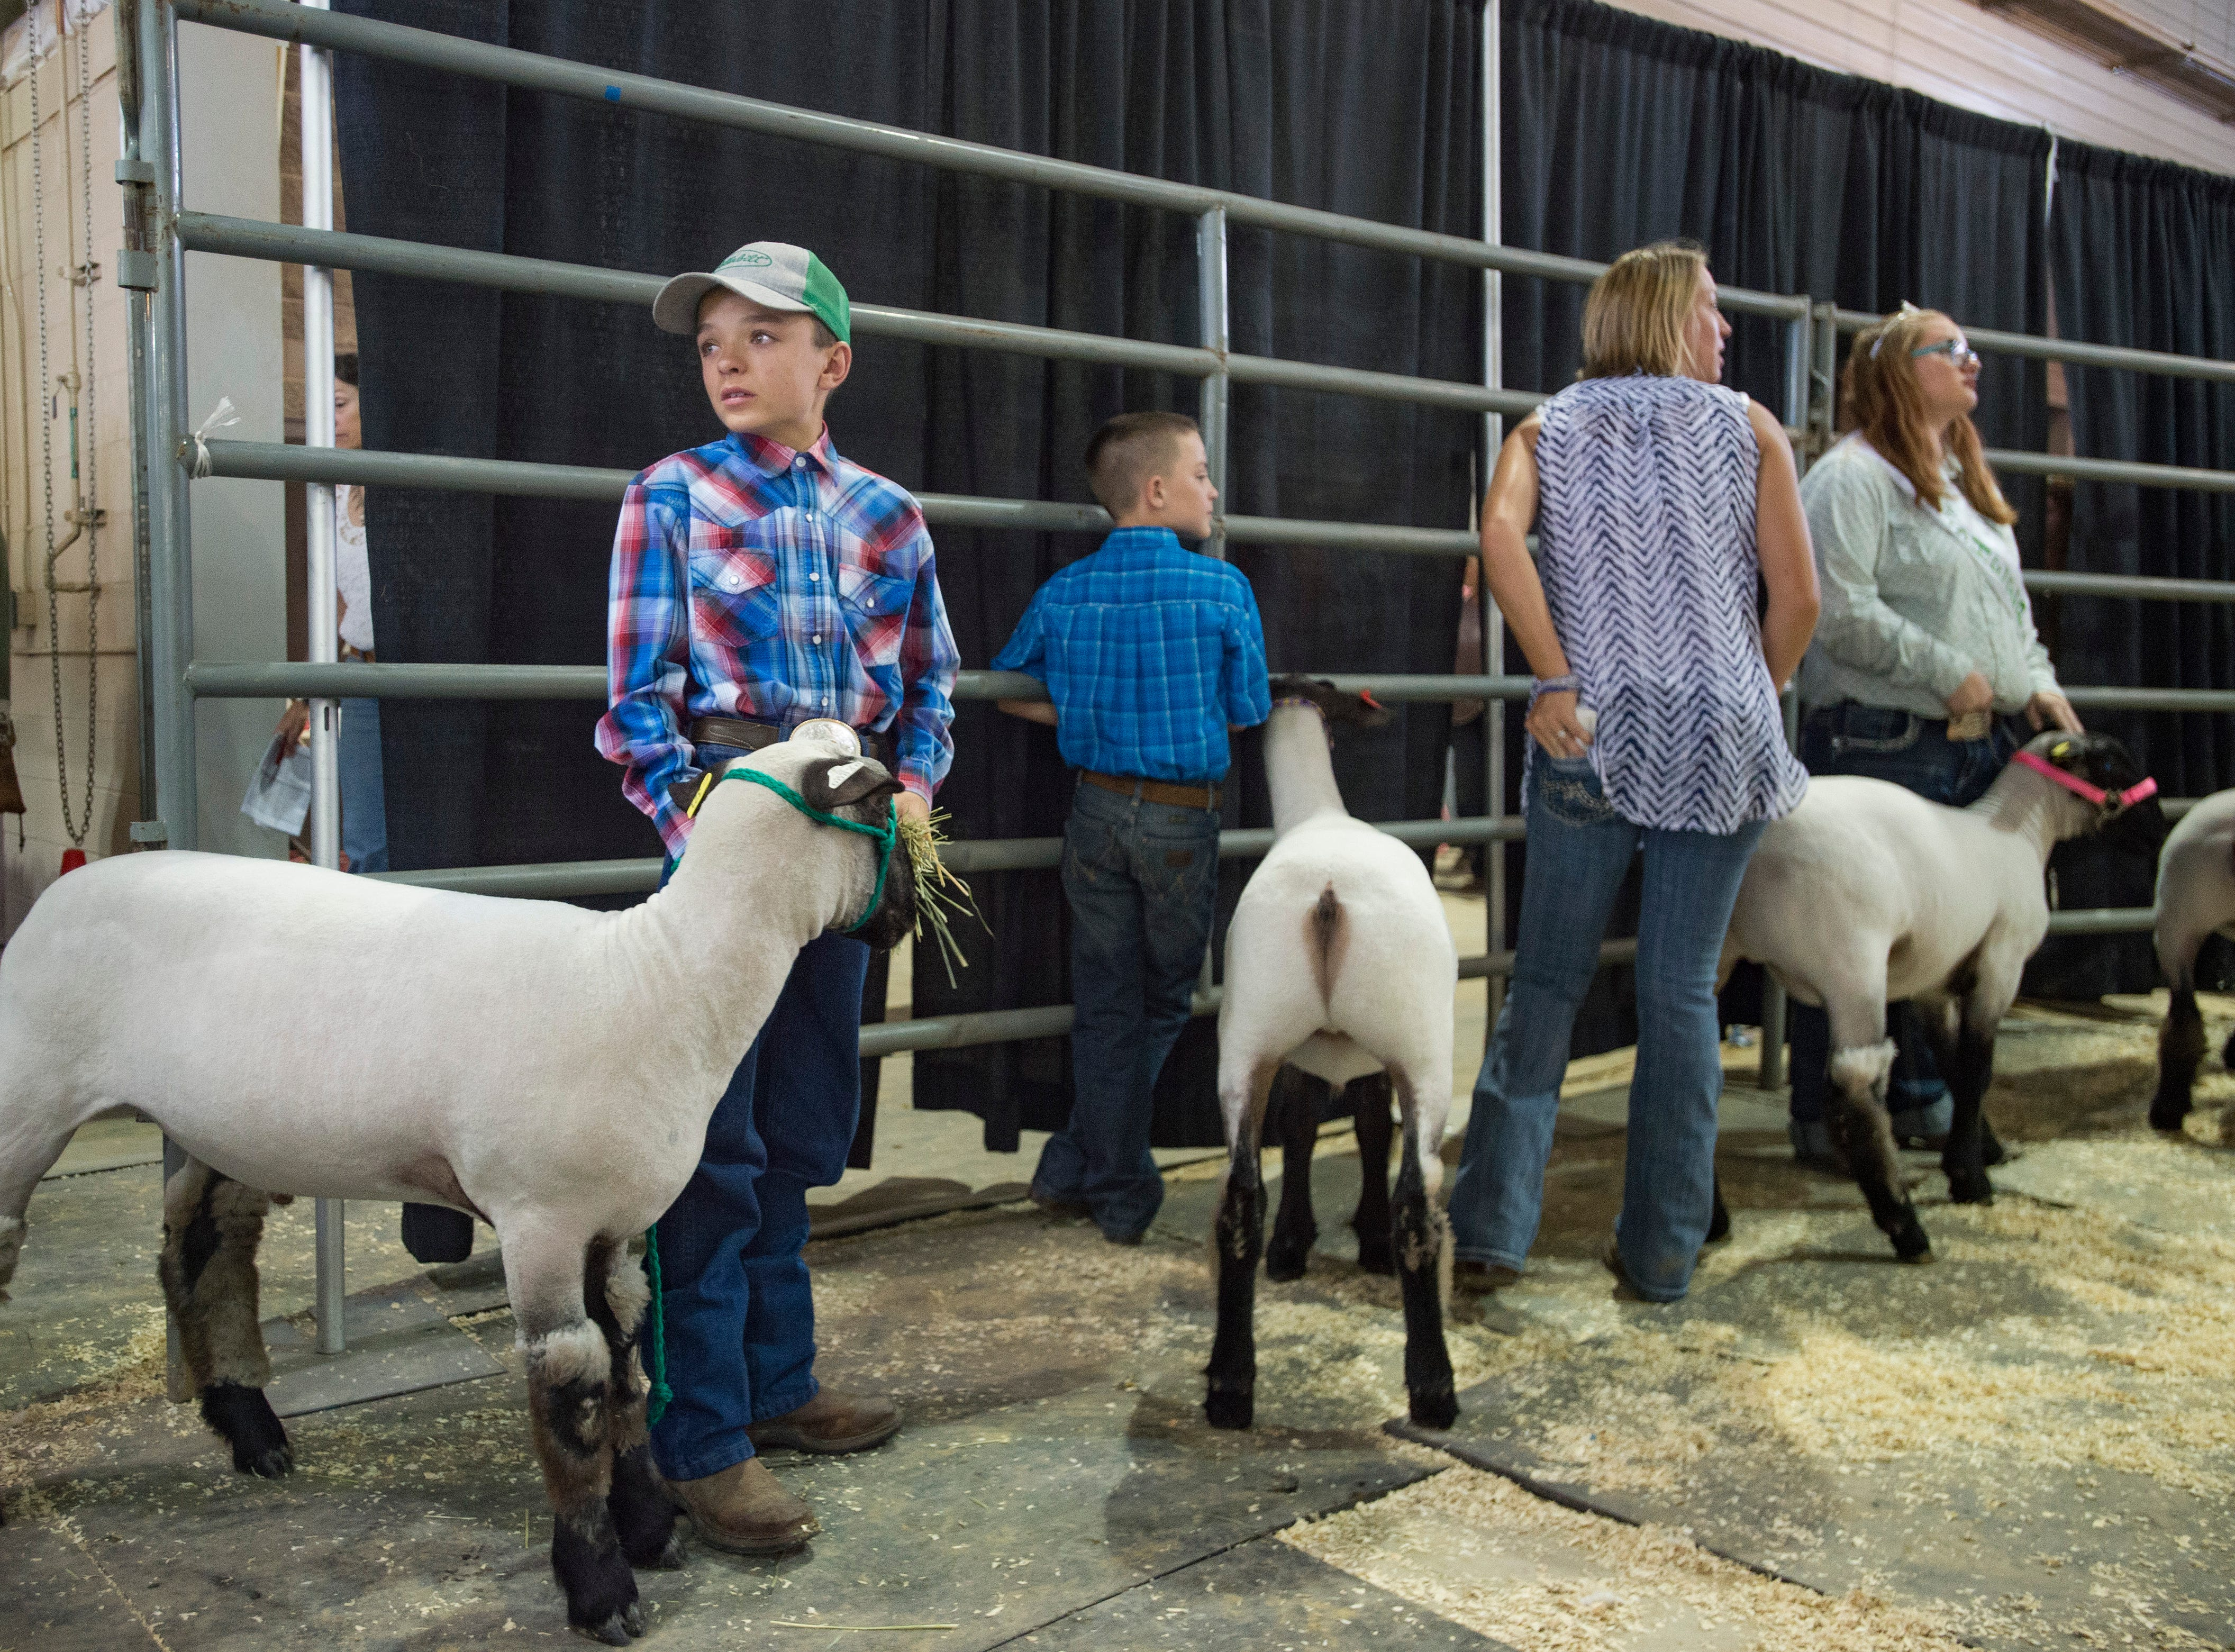 A teary-eyed Dylan Johnson holds onto his lamb before bids are placed at the Larimer County Fair Youth Livestock Sale at The Ranch in Loveland on Wednesday, August 8, 2018.